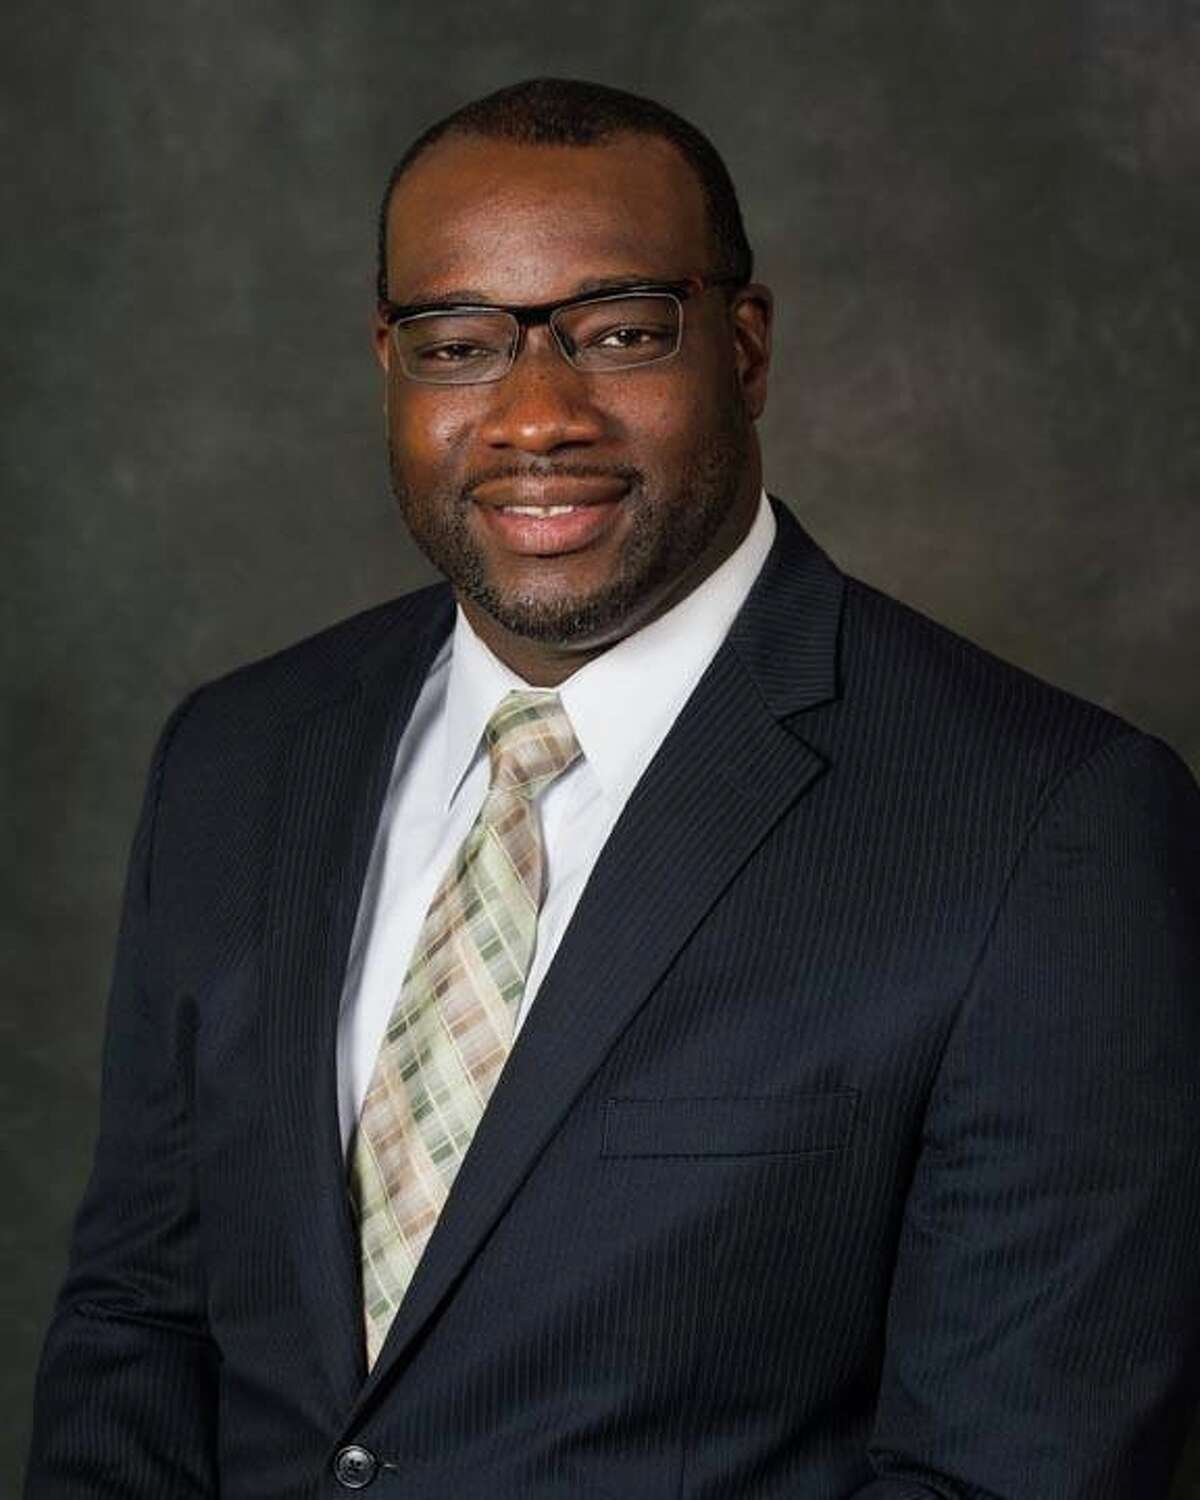 Kelvin Williams is seeking election to Pearland ISD's Position 7.